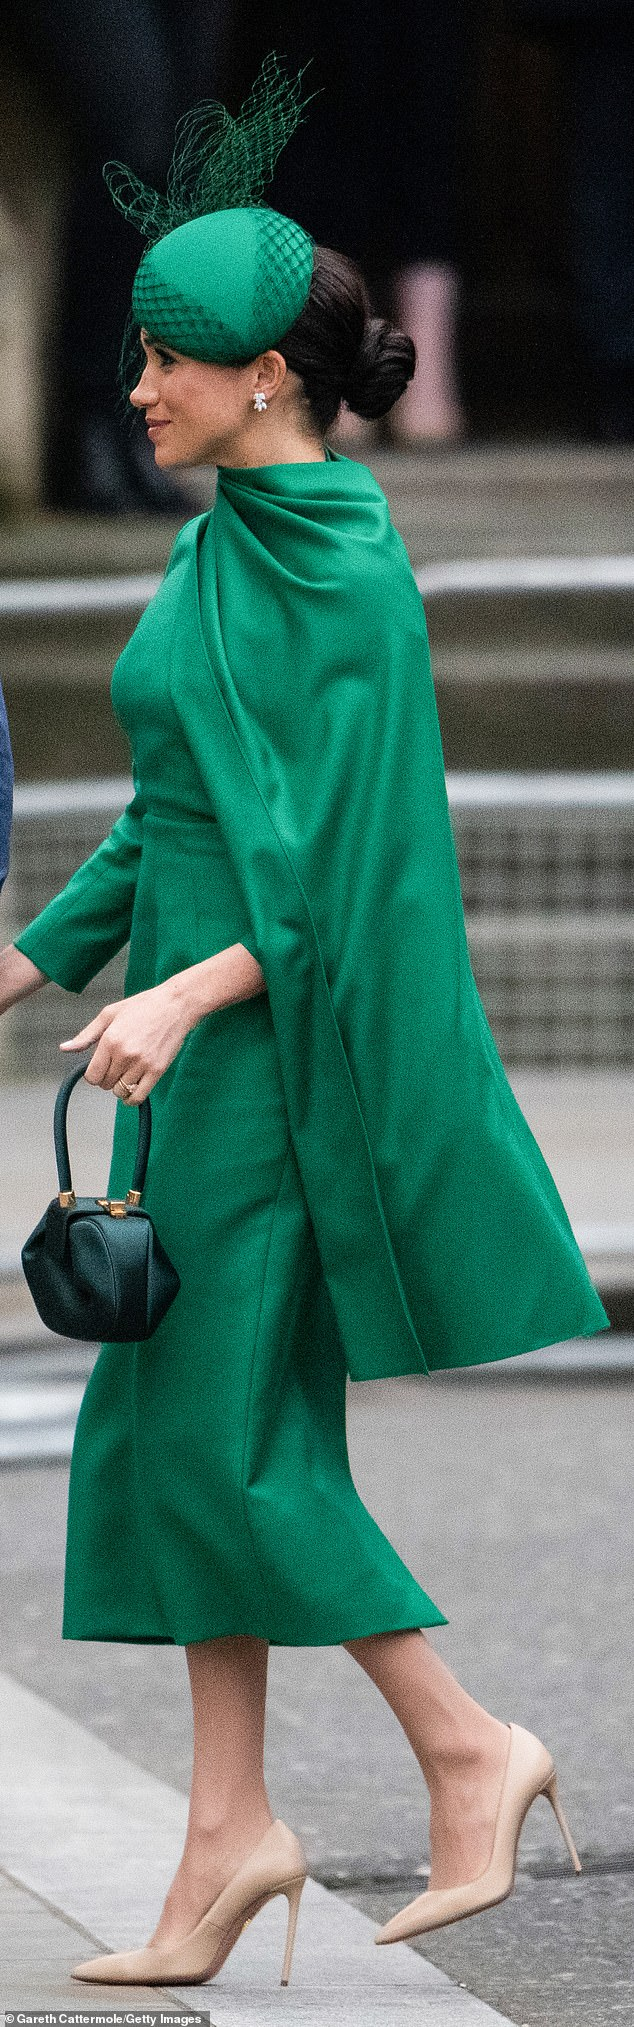 GOING GREEN AT A PRICE: For her final outing as a senior member of the Royal Family at March's Commonwealth Day service, Meghan put on an elegant — and expensive — eco display. With her bespoke Emilia Wickstead dress, Meghan carried a £1,695 Demi bag by New York-based designer Gabriela Hearst. Hearst is a purveyor of 'slow fashion'; 99 per cent of her textiles are sustainable, with a focus on zero waste, upcycling and eco-conscious processes. Think cardboard hangers, compostable plastic and humanely farmed leather.